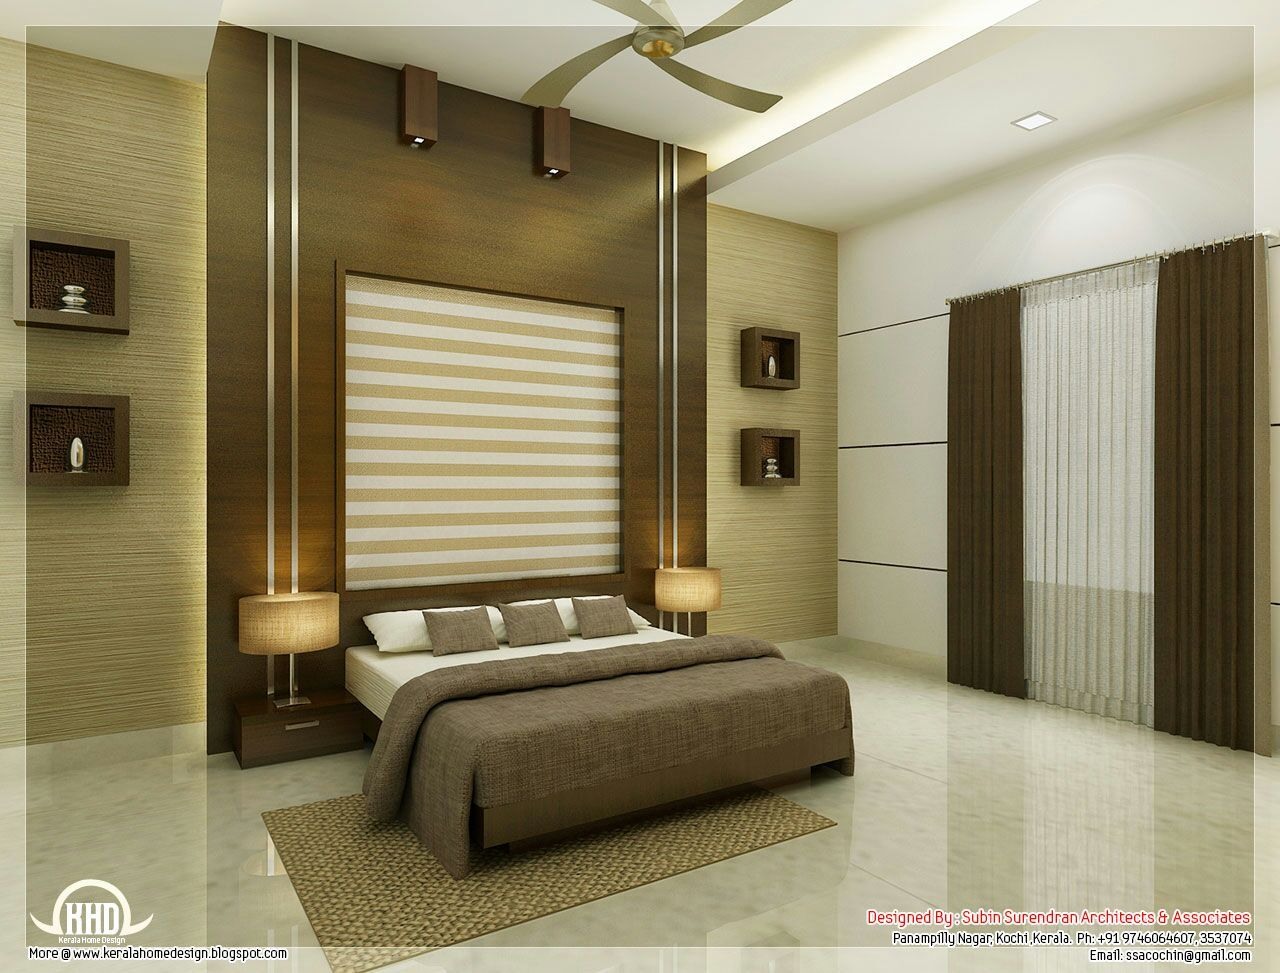 Globaldecoratorspanels Has Great Flexibility And Adaptability For